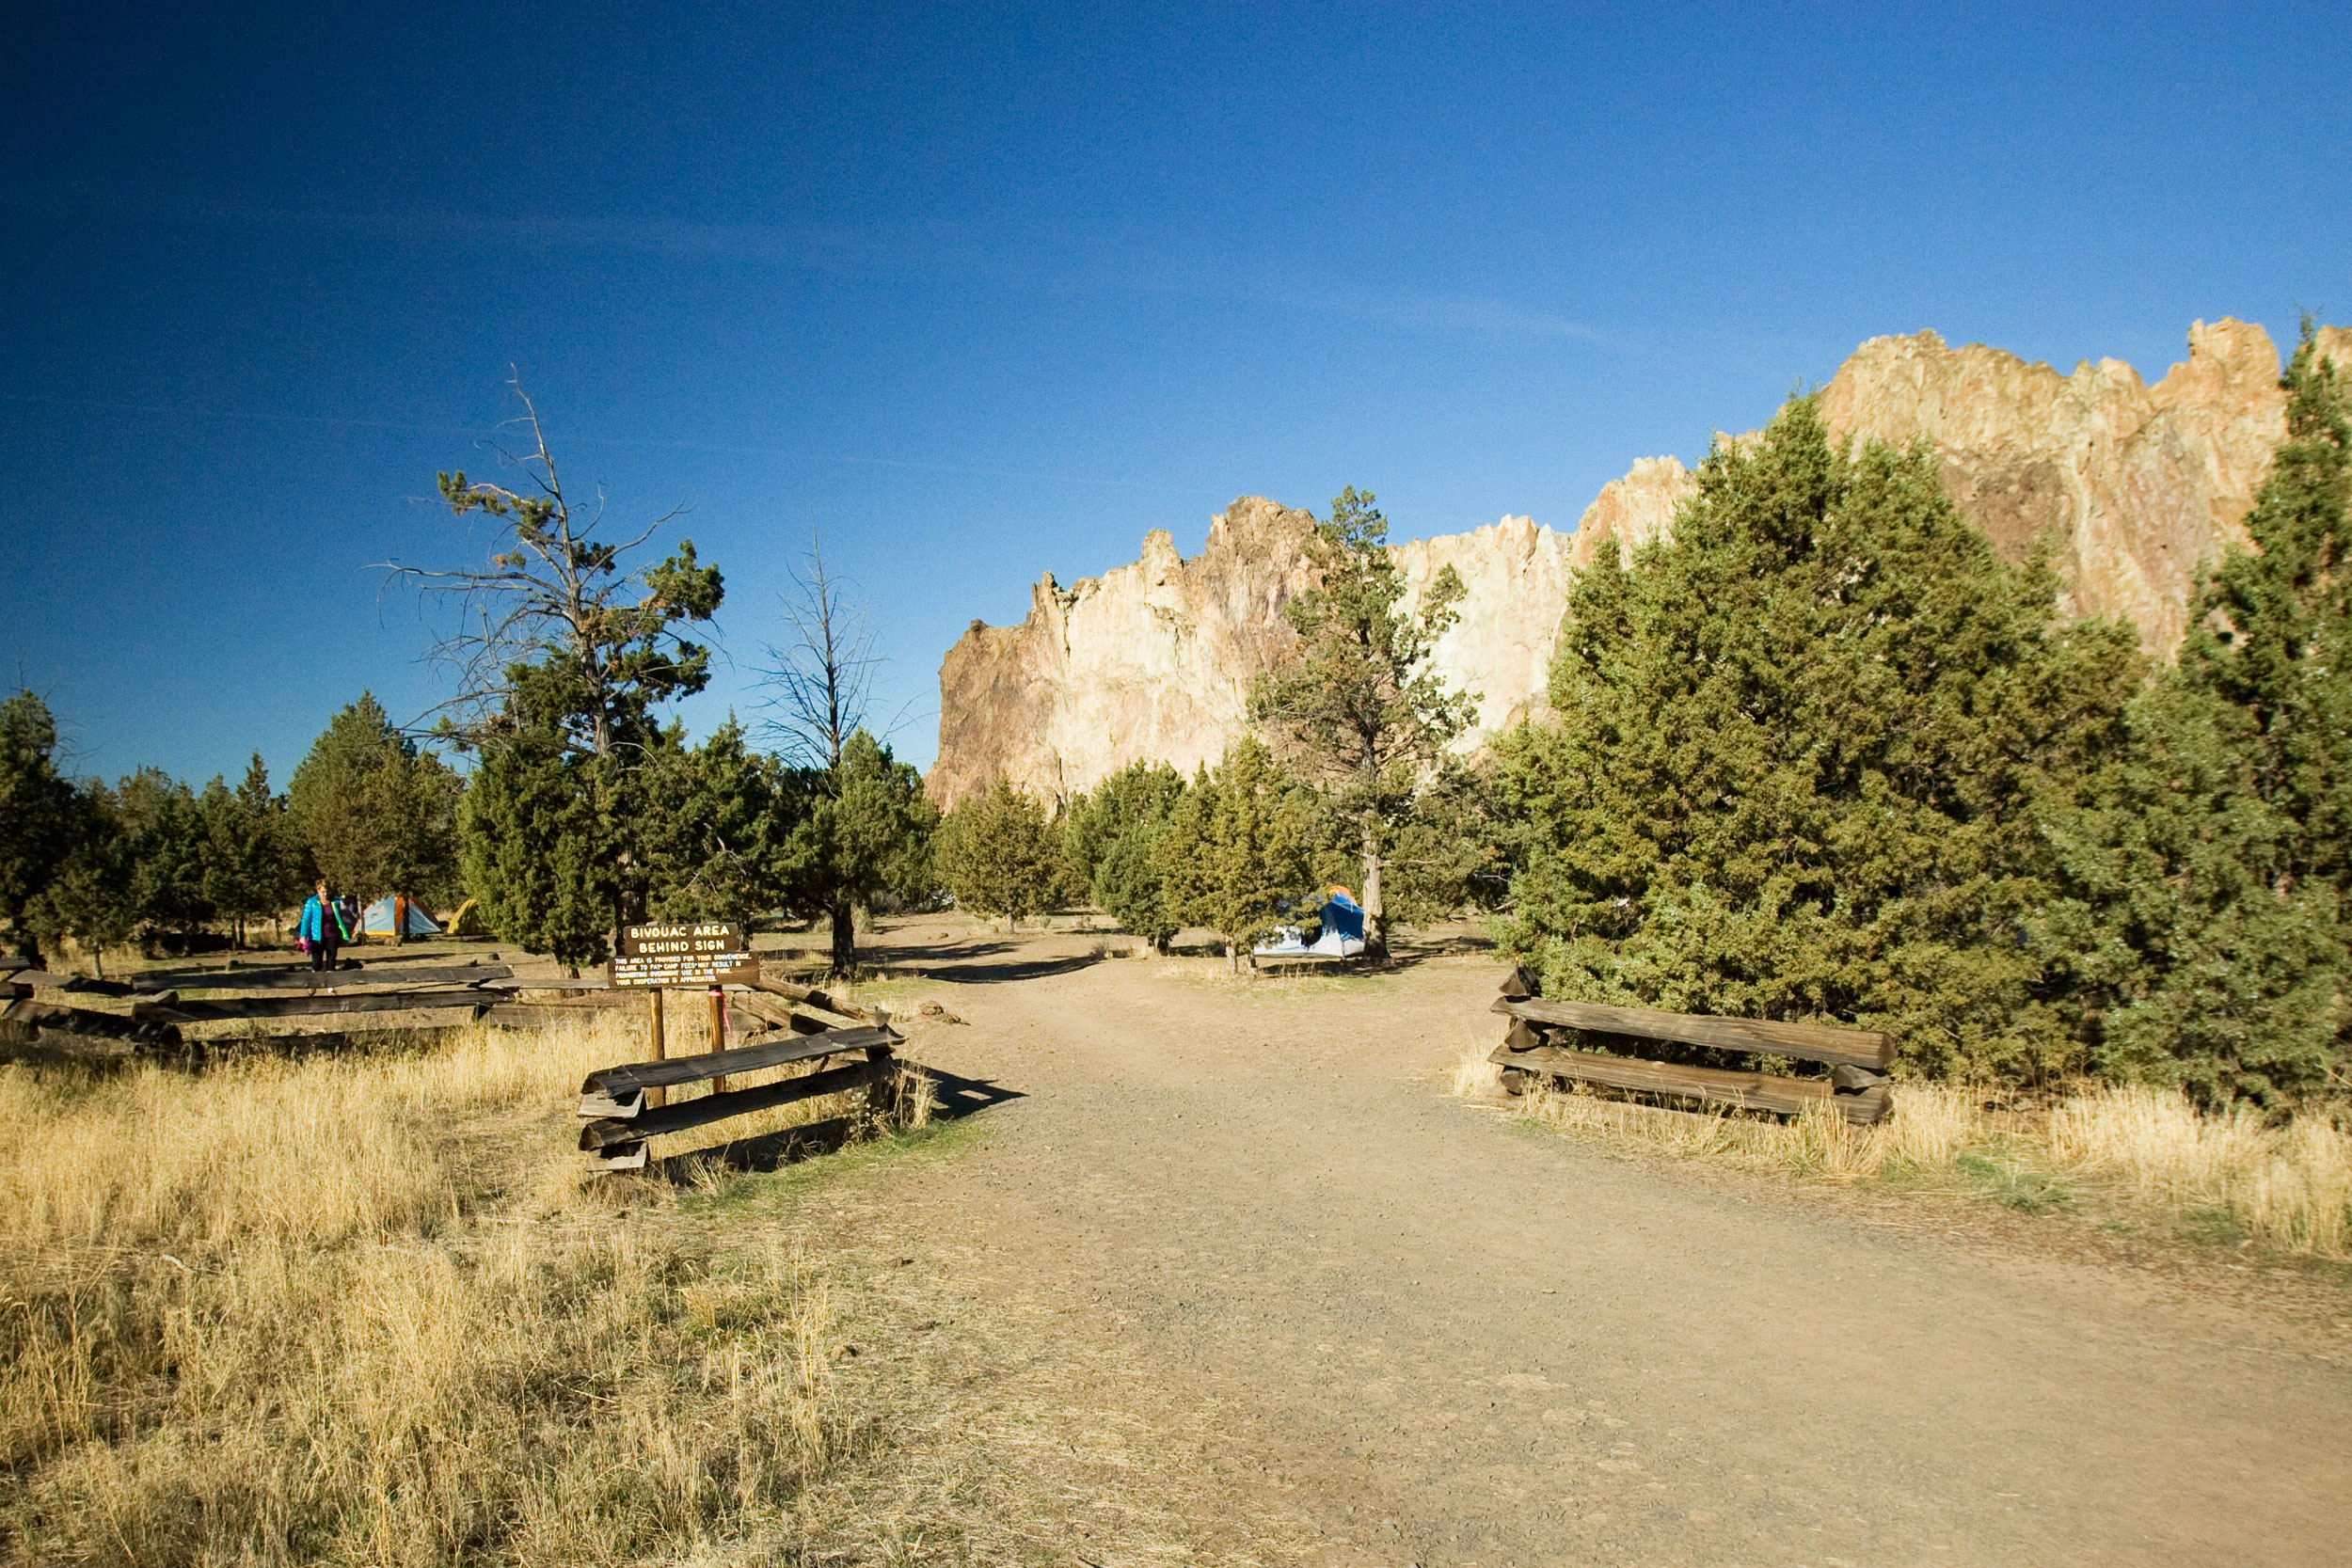 entrance to the camping area of the Bivy campground at Smith Rock State Park